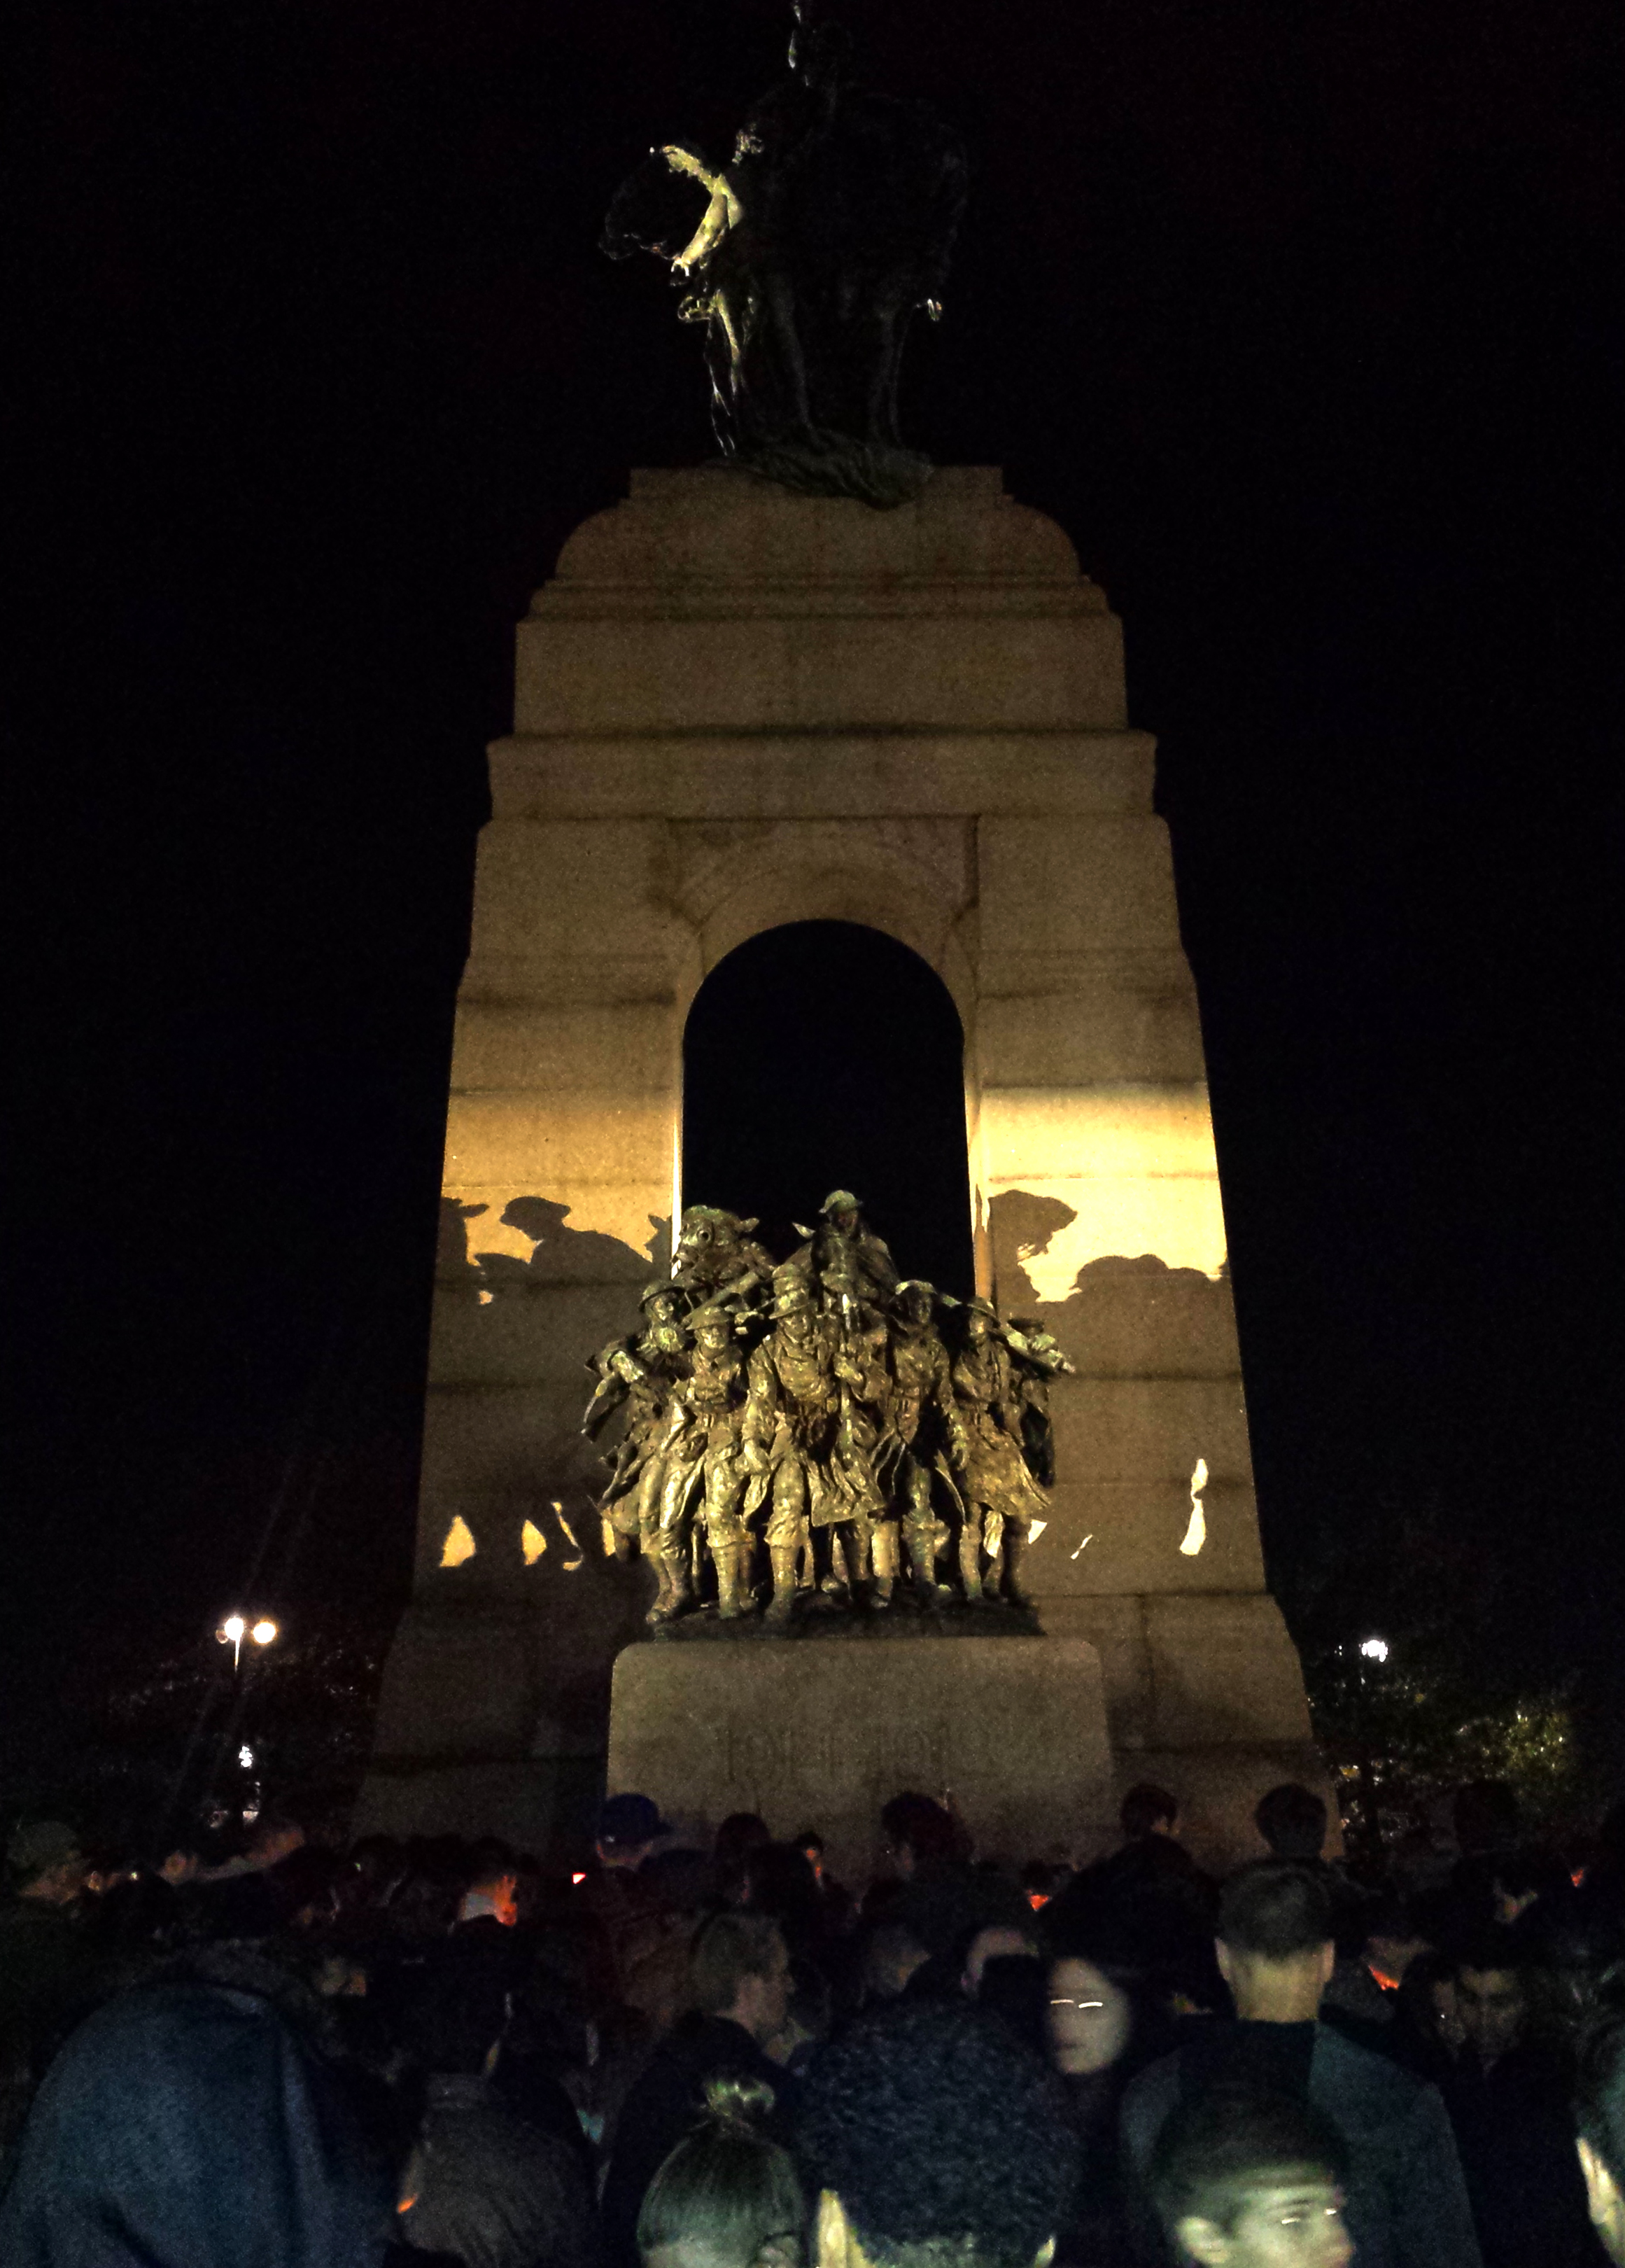 A candlelit vigil for Nathan Cirillo on October 25th